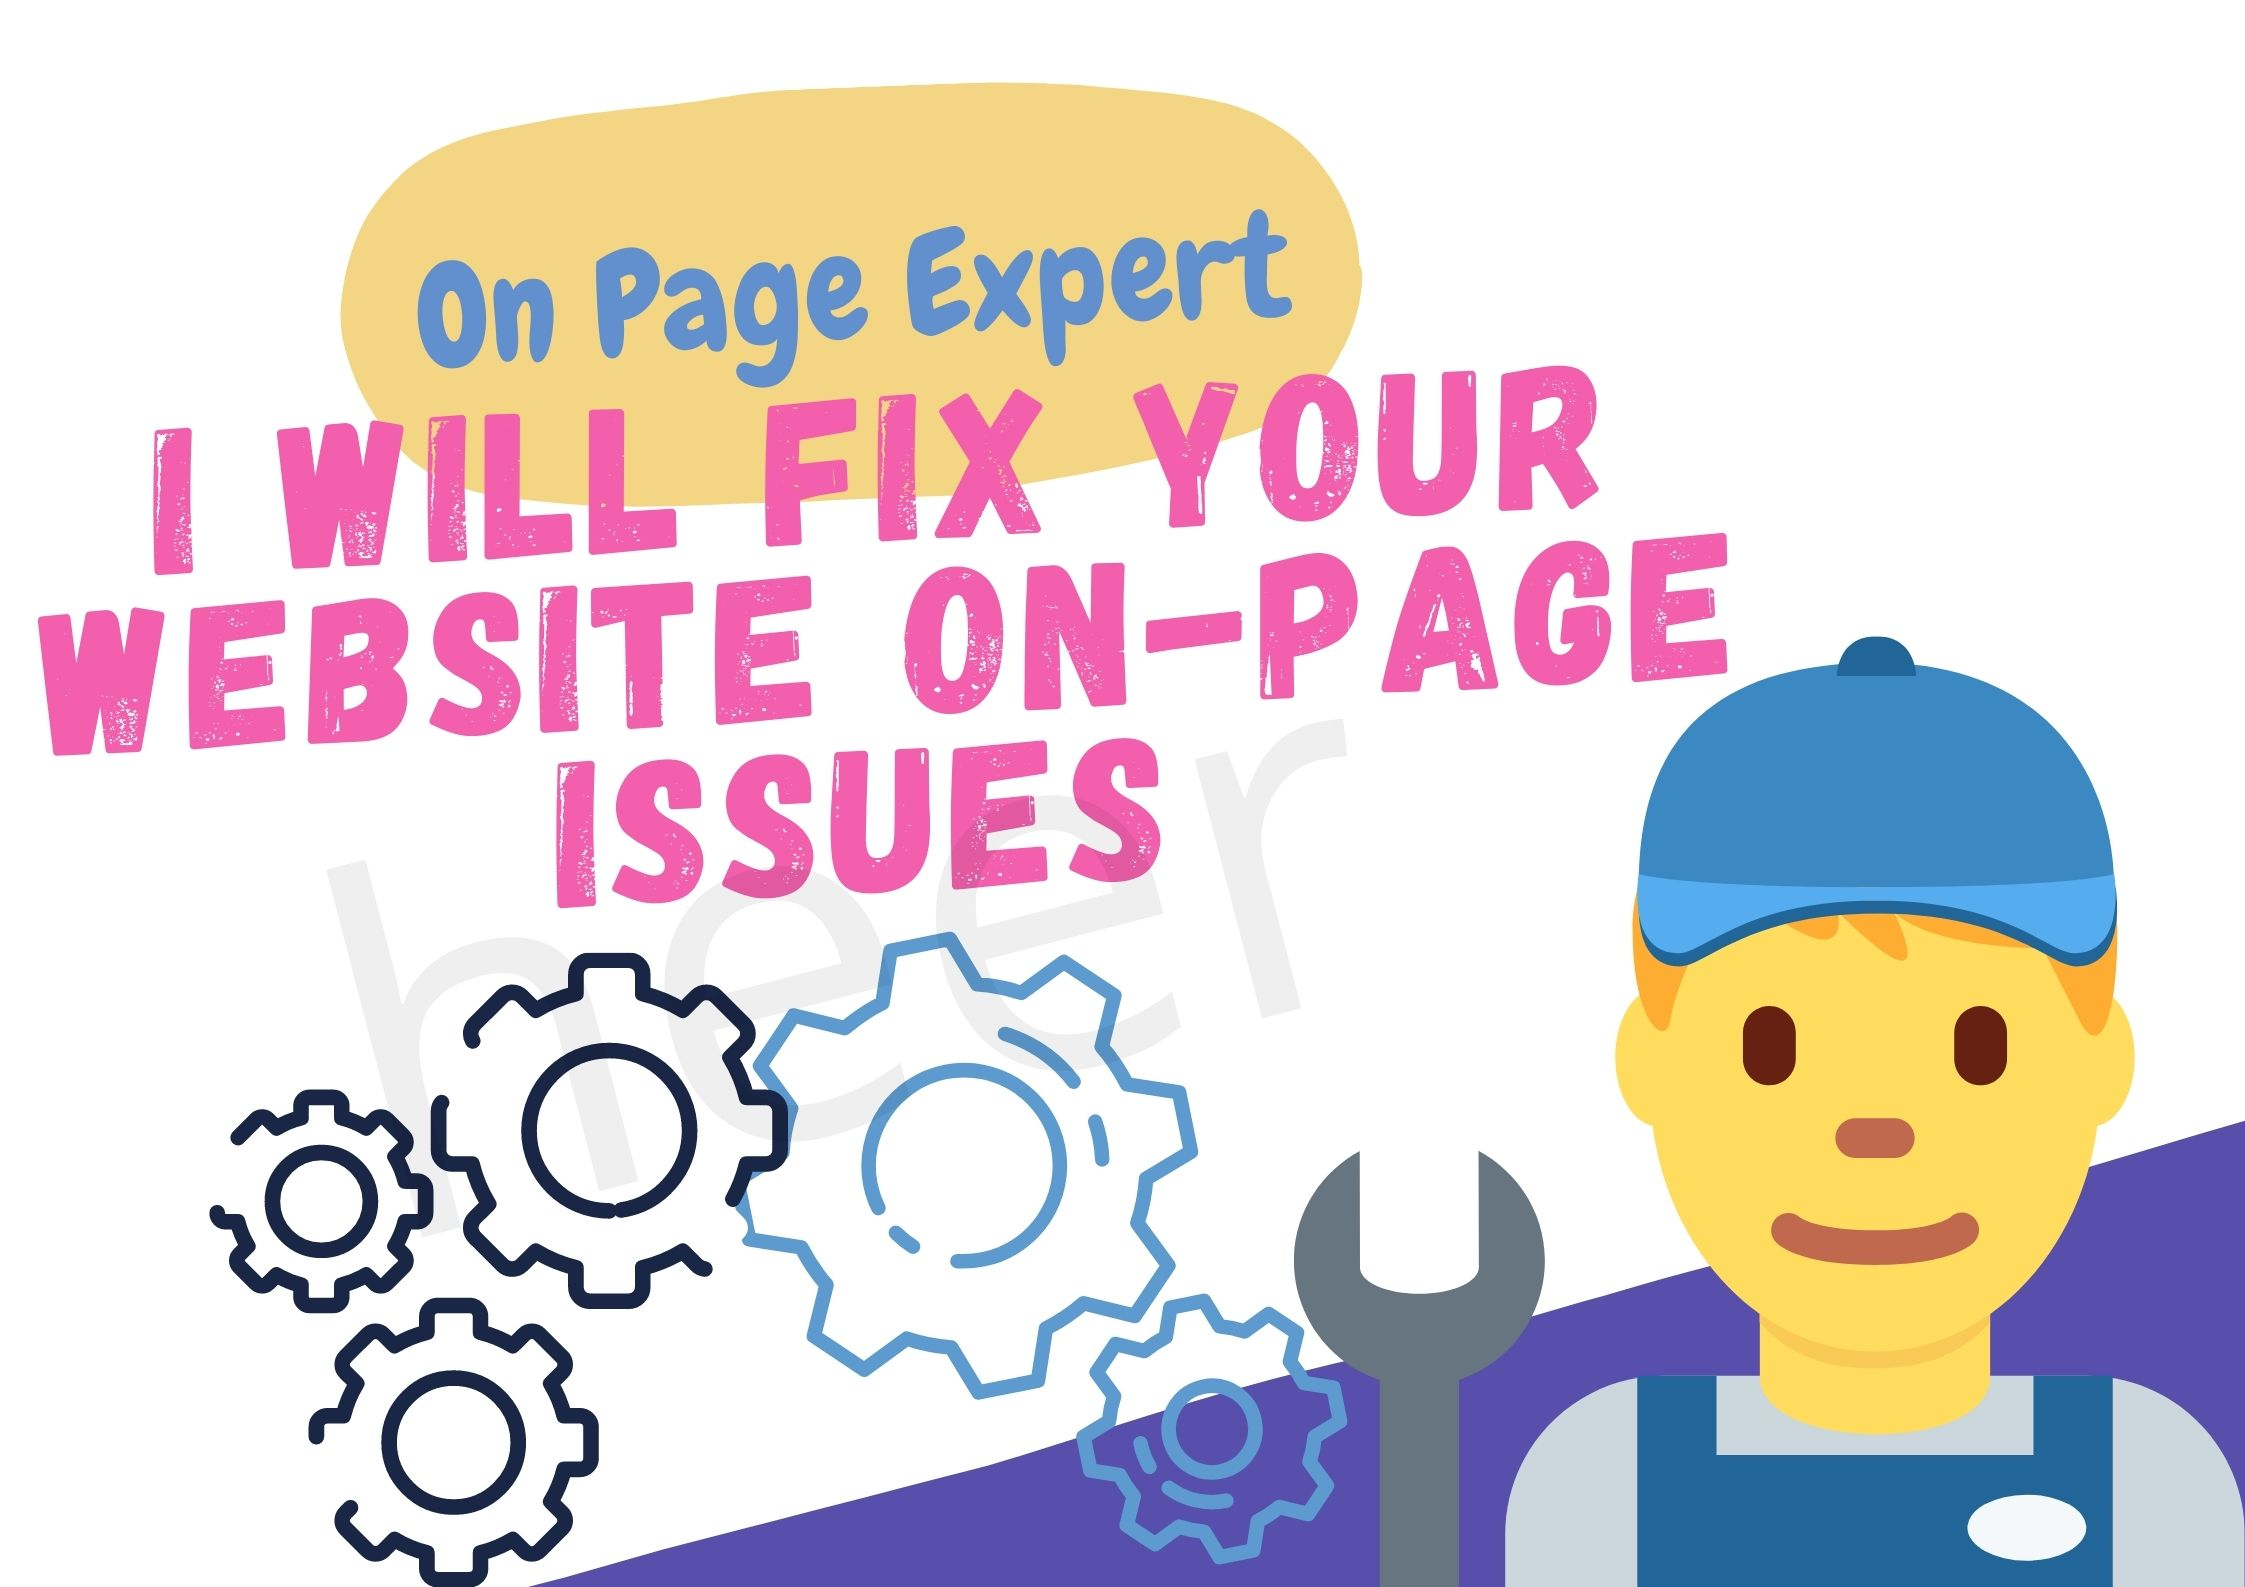 I will fix your website on-page issues